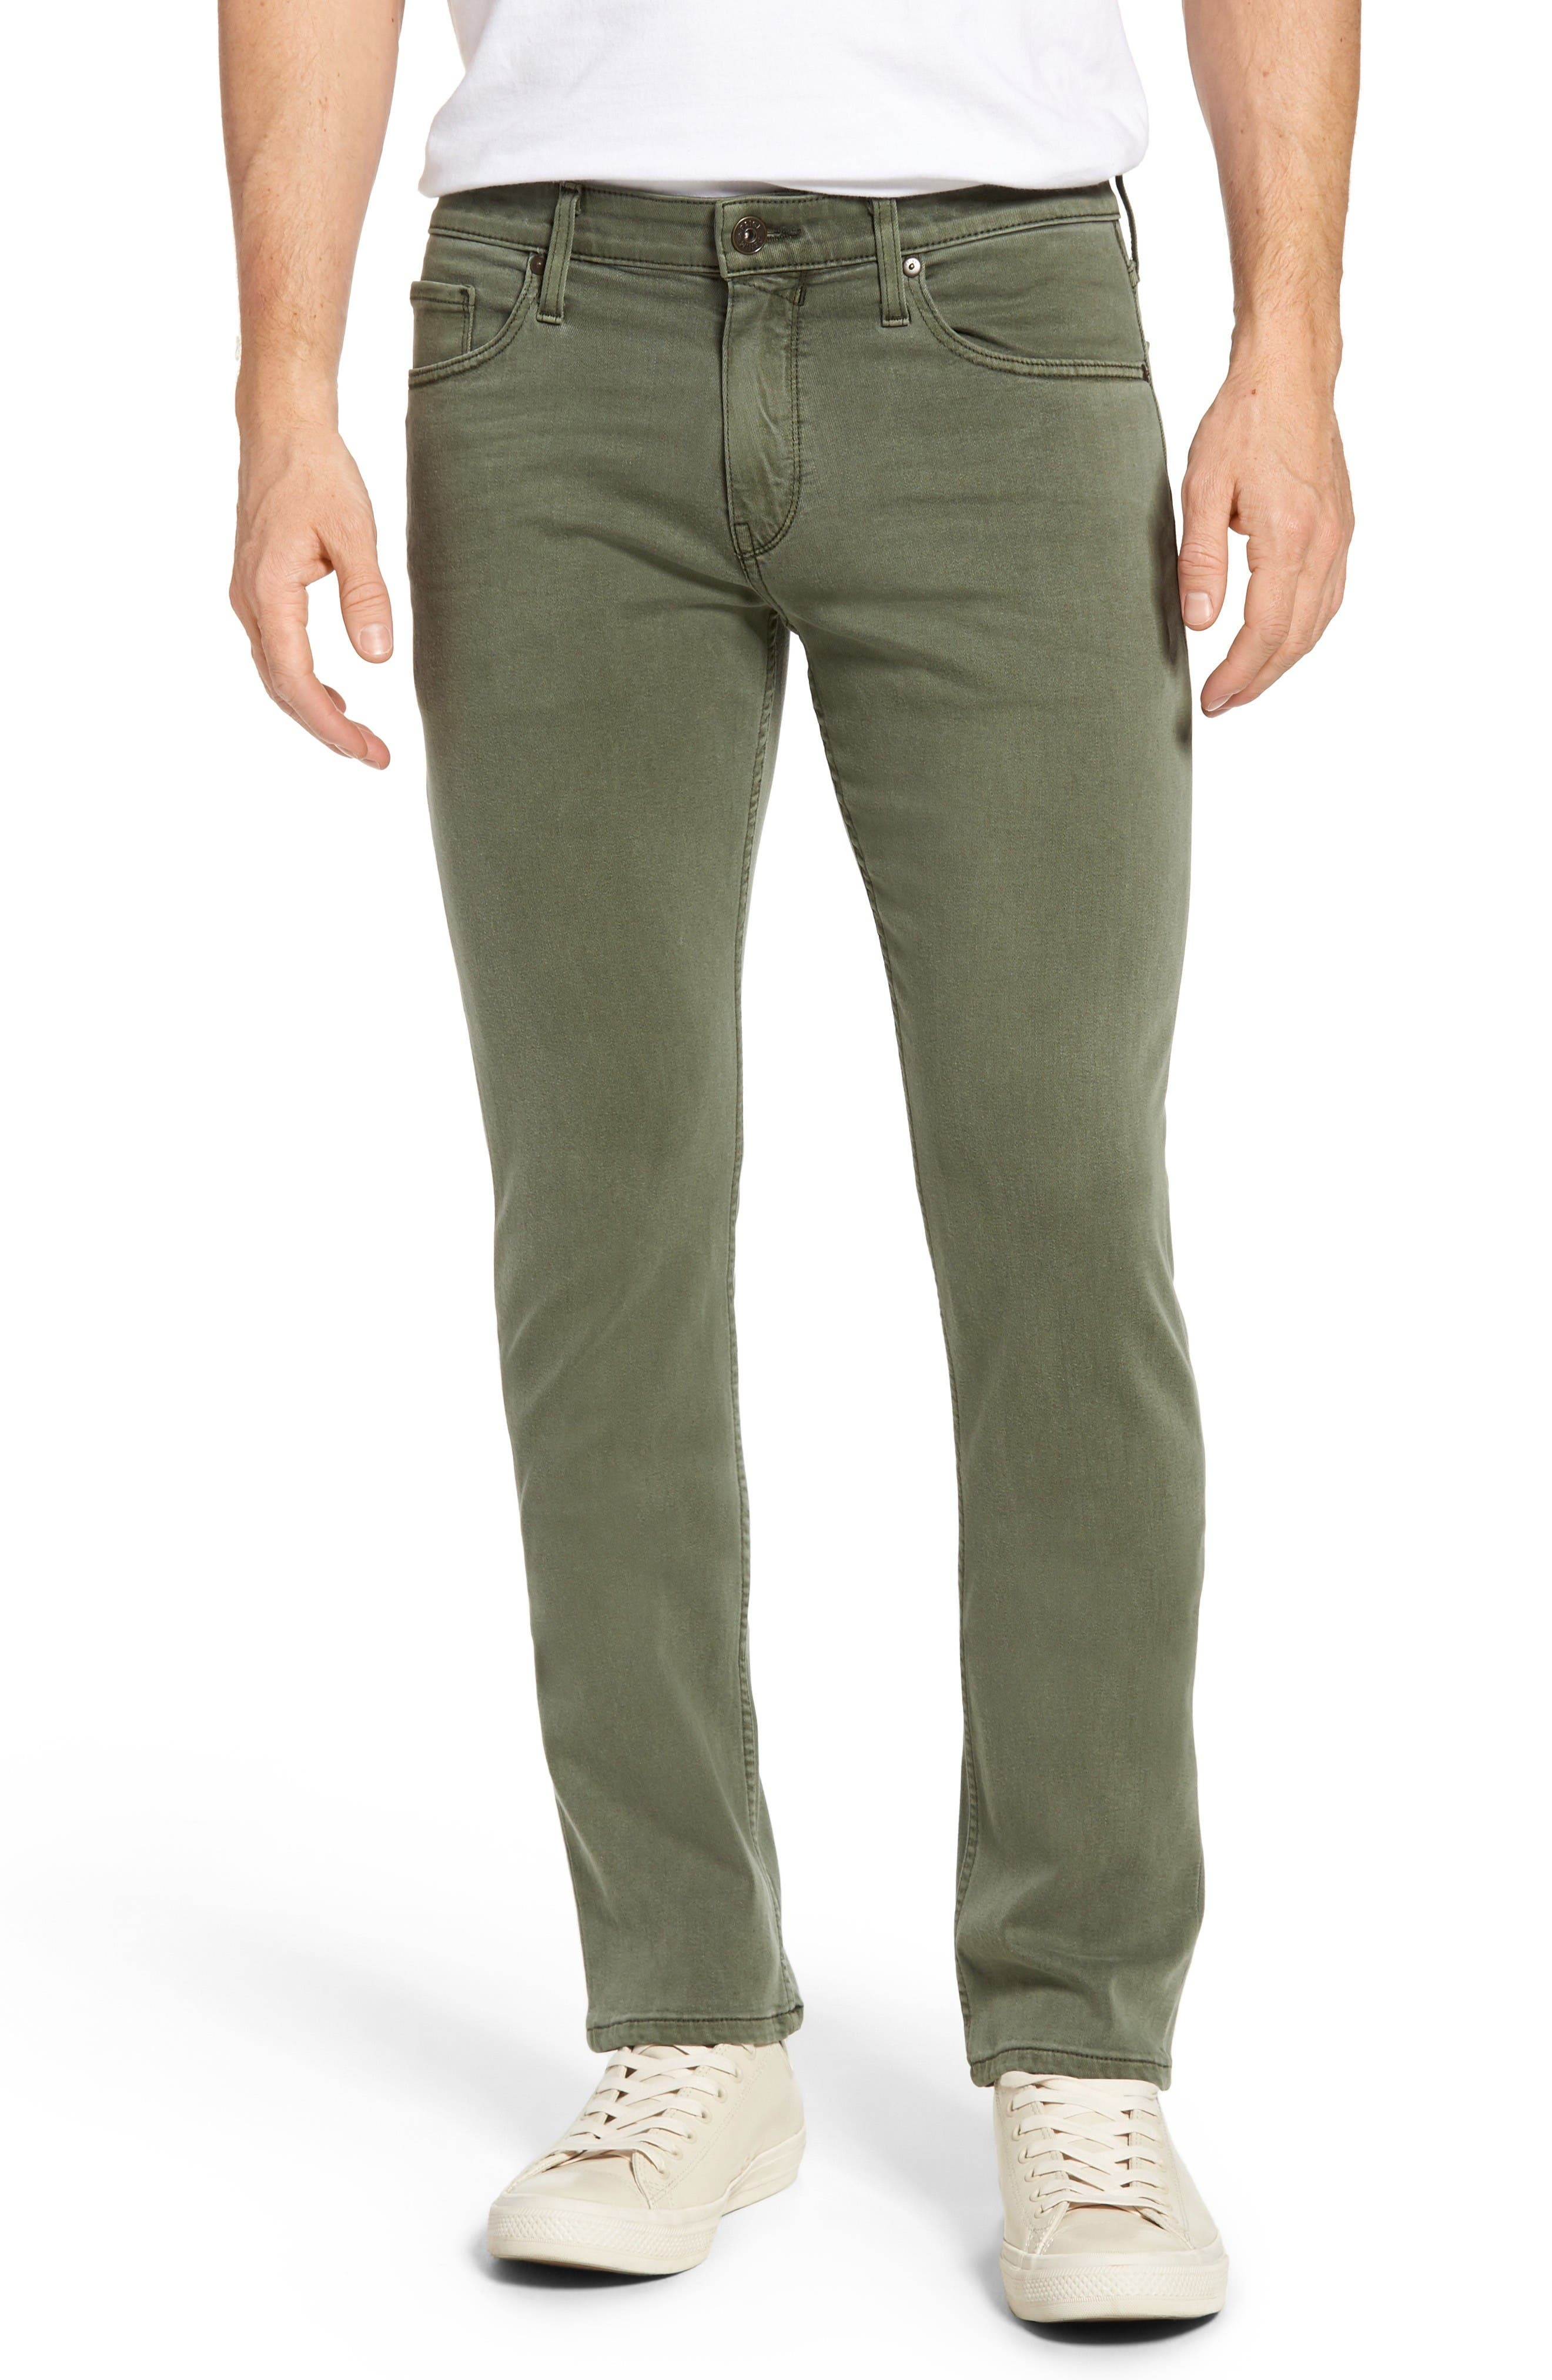 Alternate Image 1 Selected - PAIGE Transcend - Federal Slim Straight Leg Jeans (Green House)